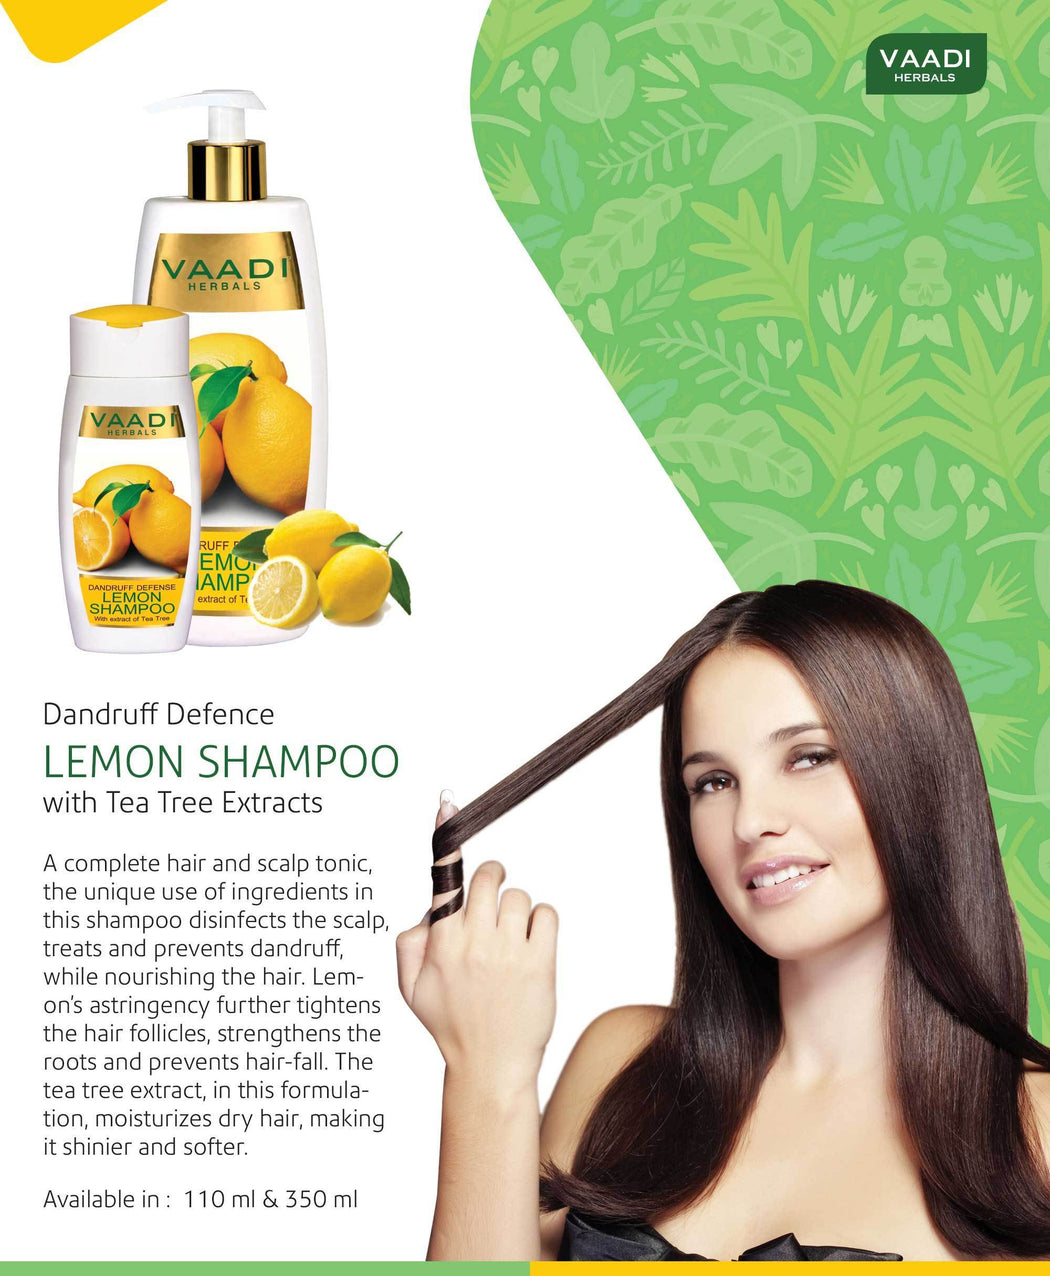 Dandruff Defense Organic Lemon Shampoo with Tea Tree Extract - Disinfects Scalp - Prevents Hairfall (350 ml/ 12 fl oz)